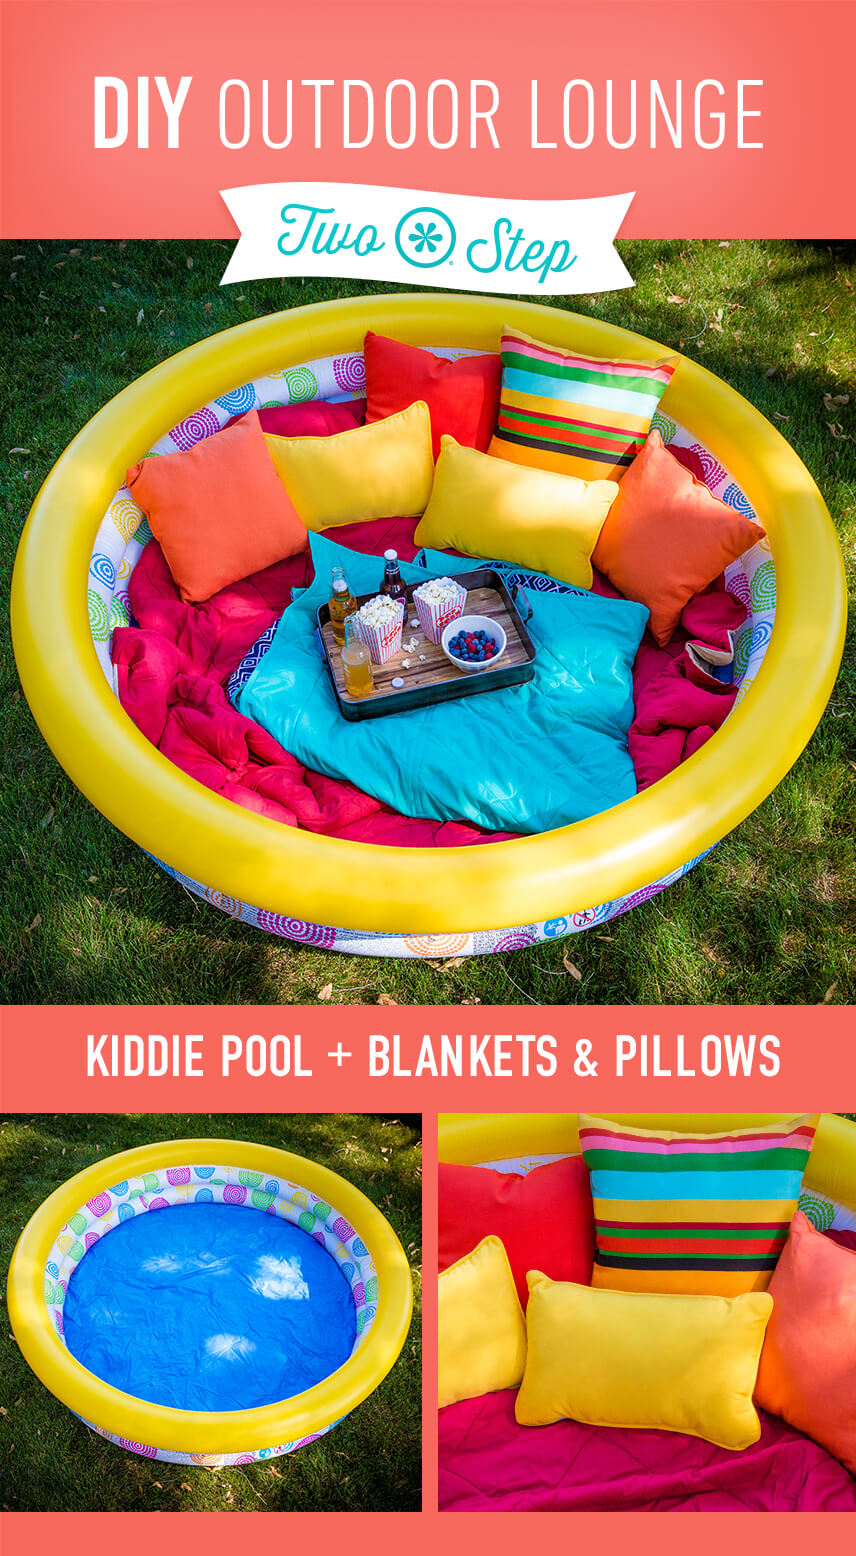 34 Best Diy Backyard Ideas And Designs For Kids In 2019 for 15 Smart Tricks of How to Upgrade Kids Backyard Ideas